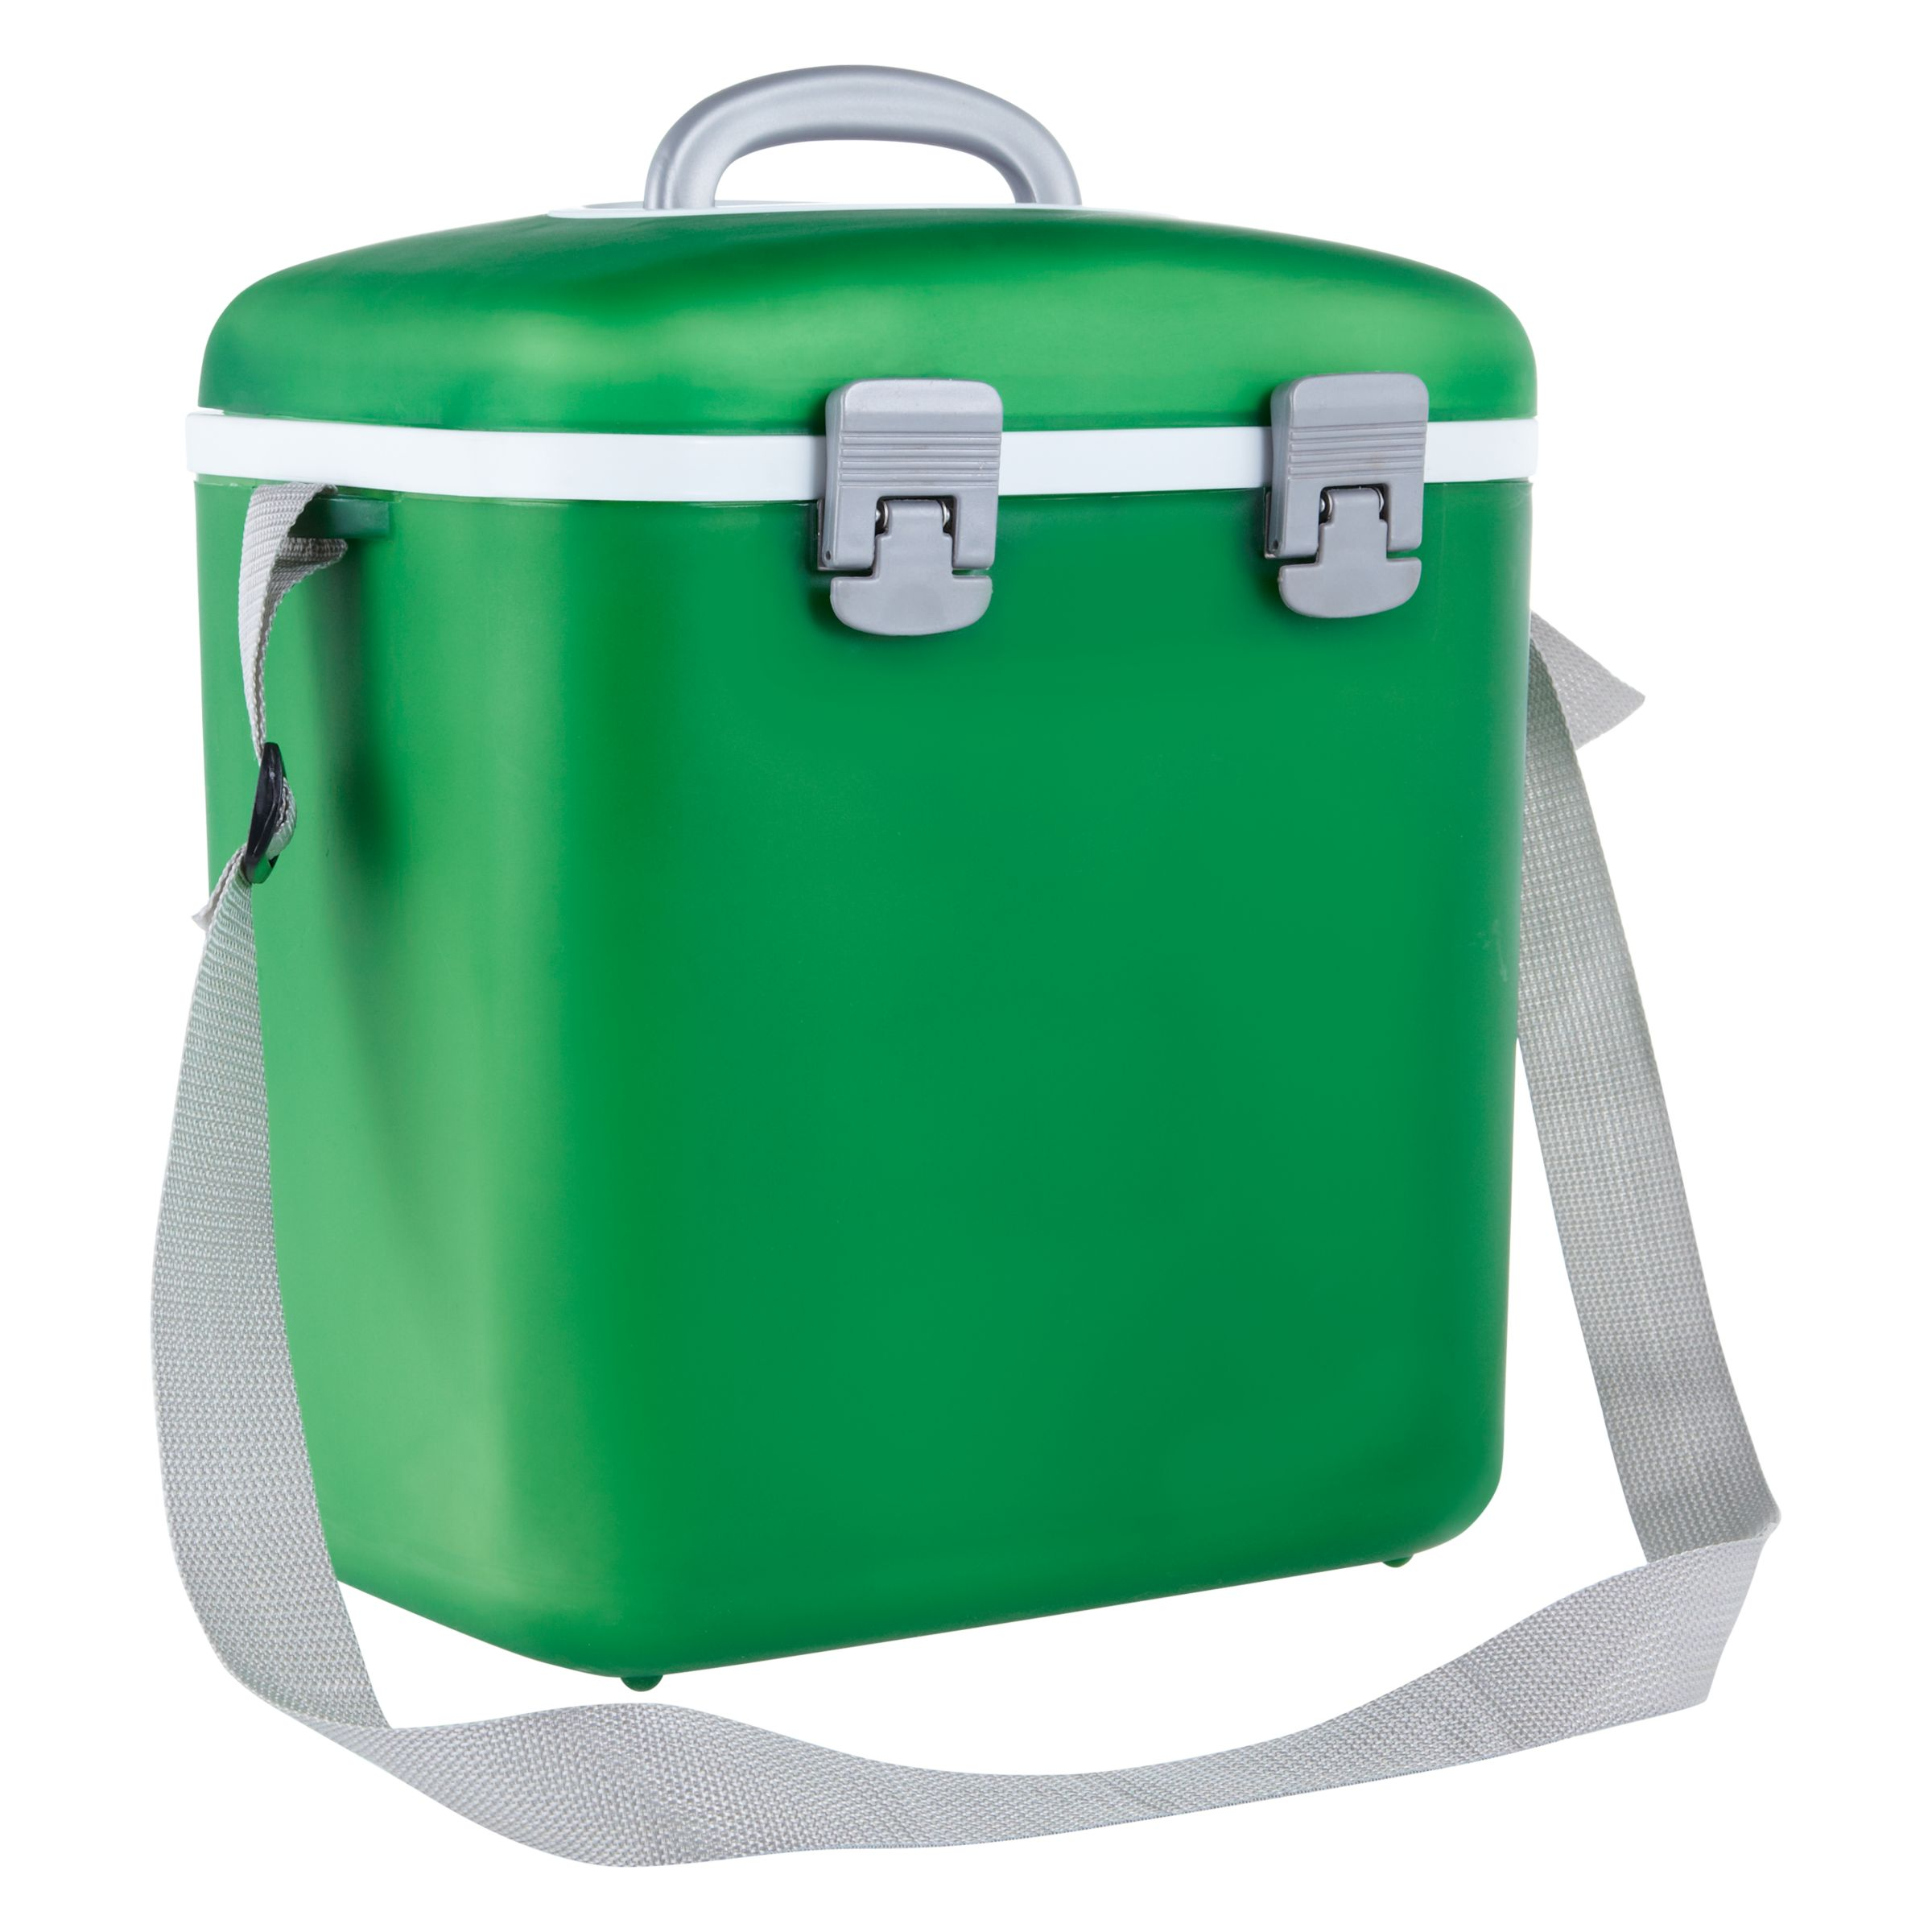 House by John Lewis Coolbox, 15L, Green